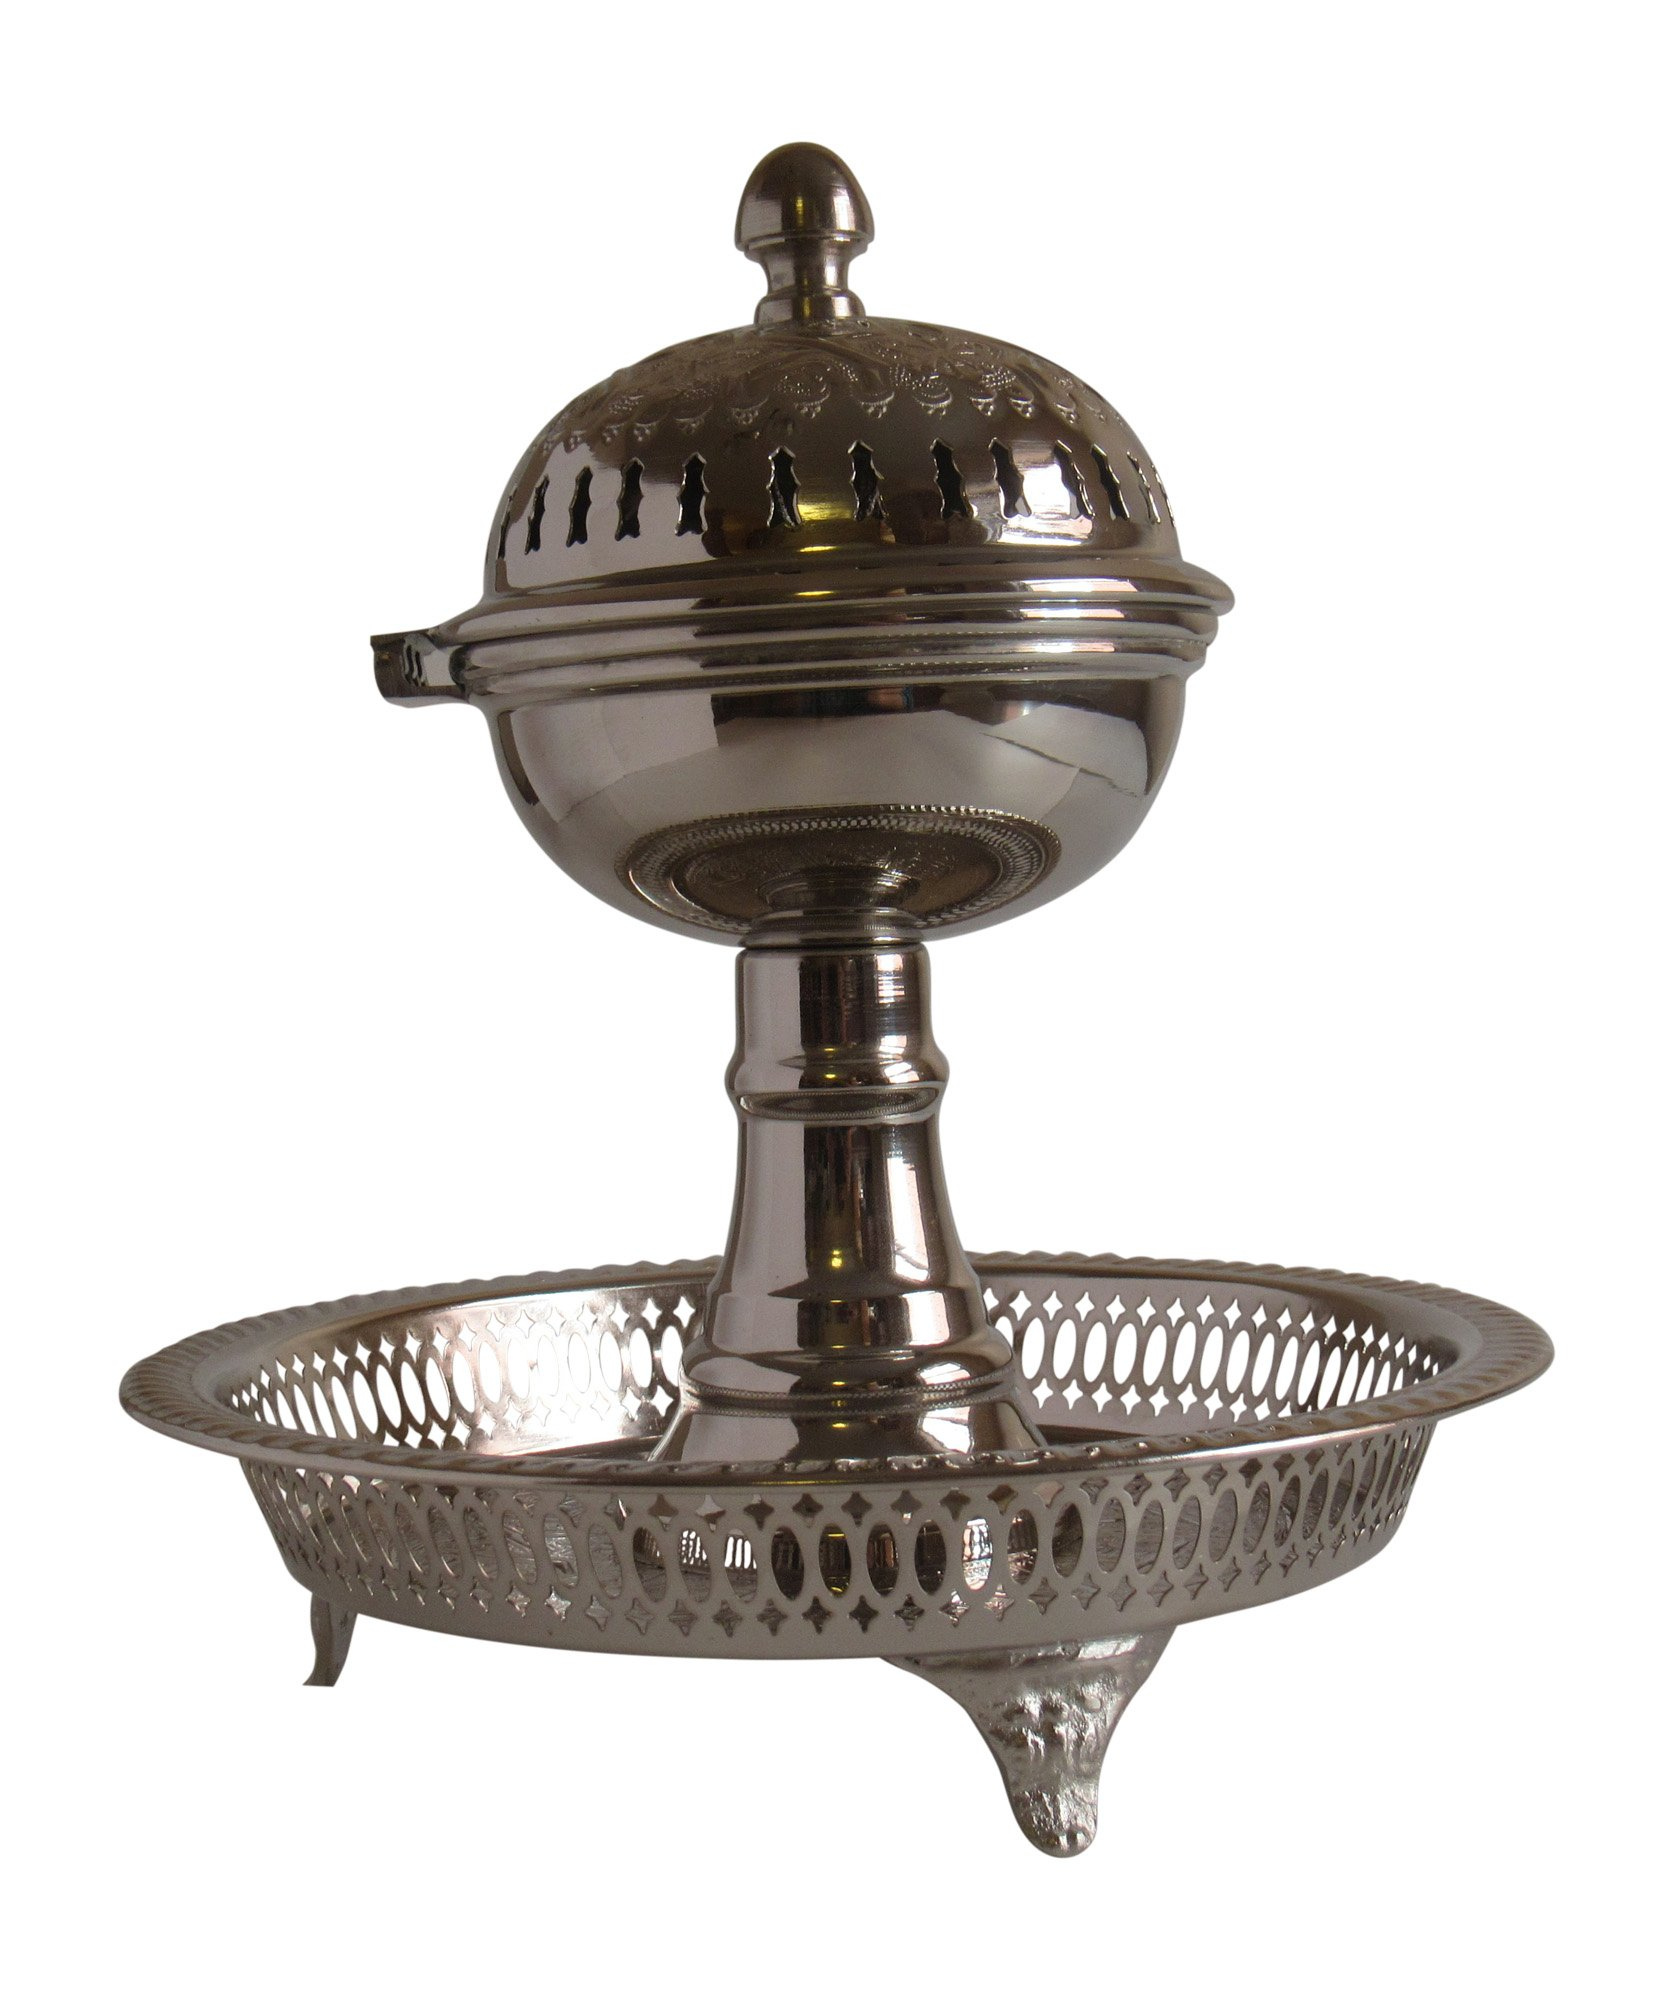 Vintage Styled Handmade Moroccan Silver Plated Engraved Incense Burner with Ash Catcher, Bring Home a Beautifully Functional Near East Tradition, 11x10''